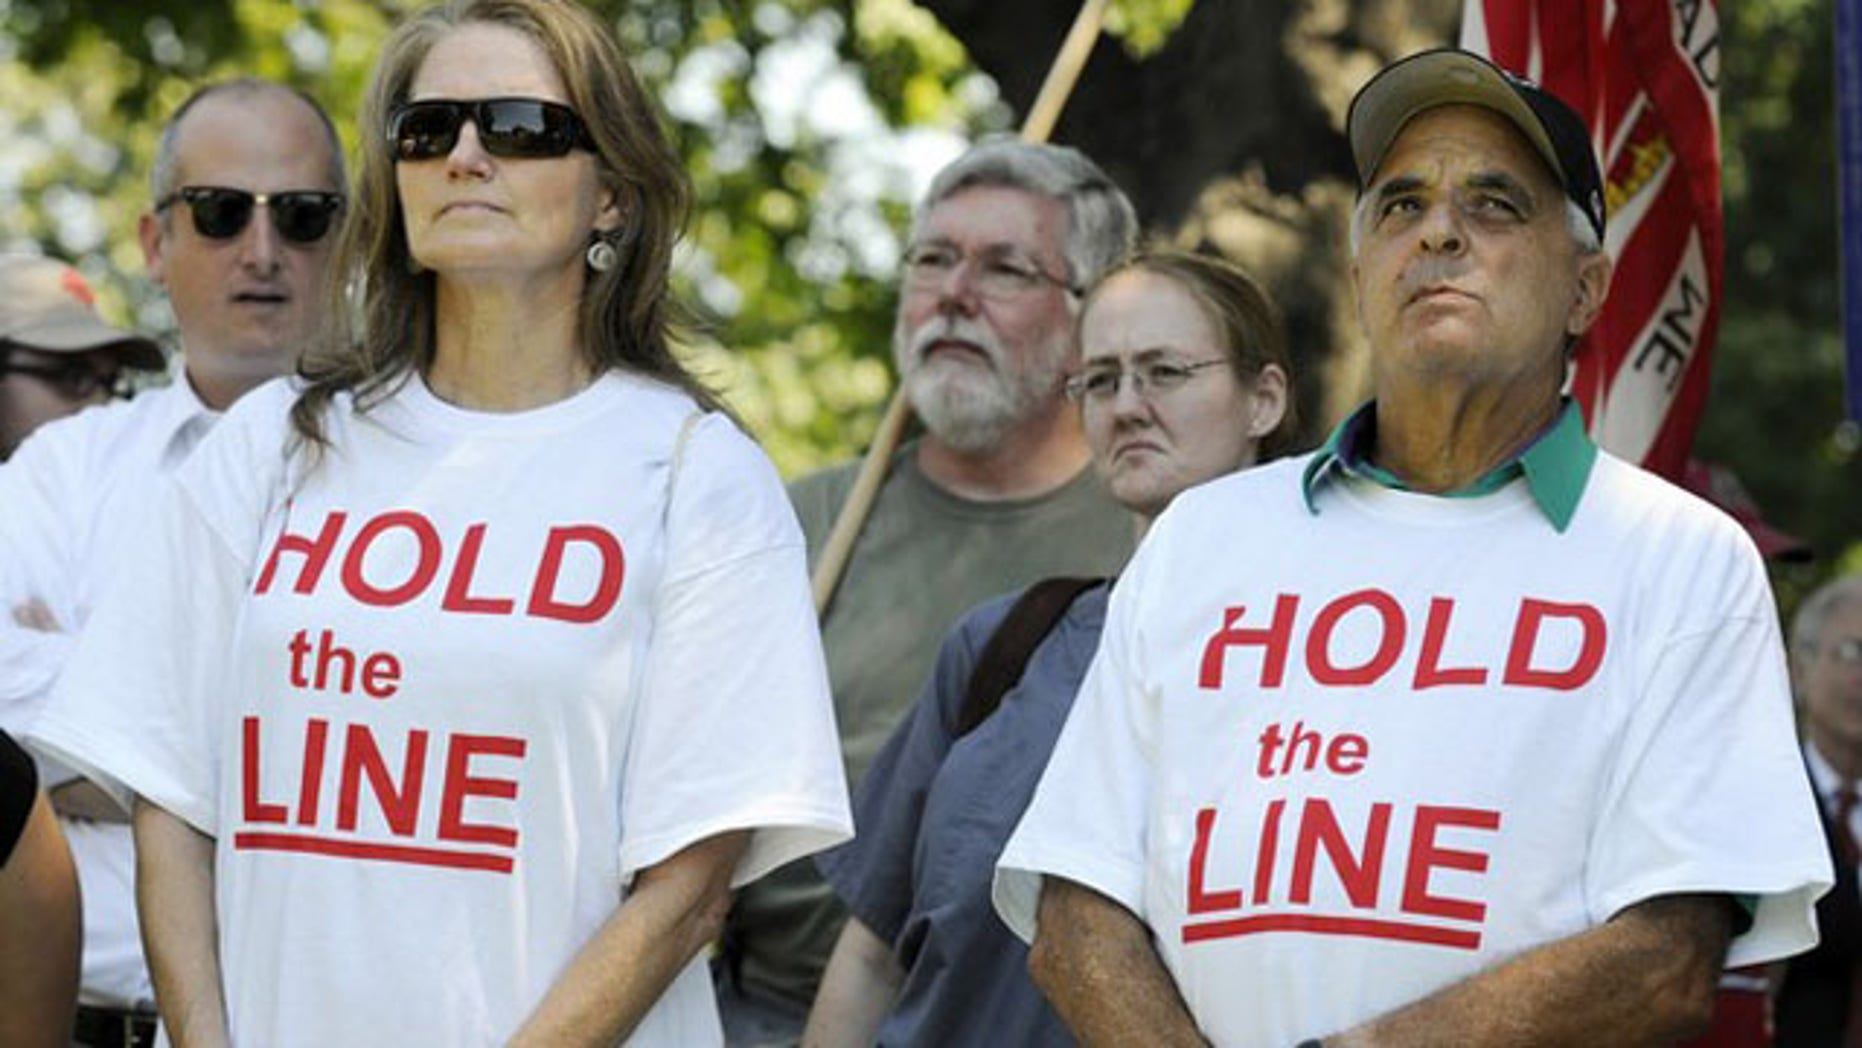 FIle: Tea Party supporters wear 'Hold the Line' t-shirts as dozens rallied near the U.S. Capitol against raising the debt limit in Washington July 27.